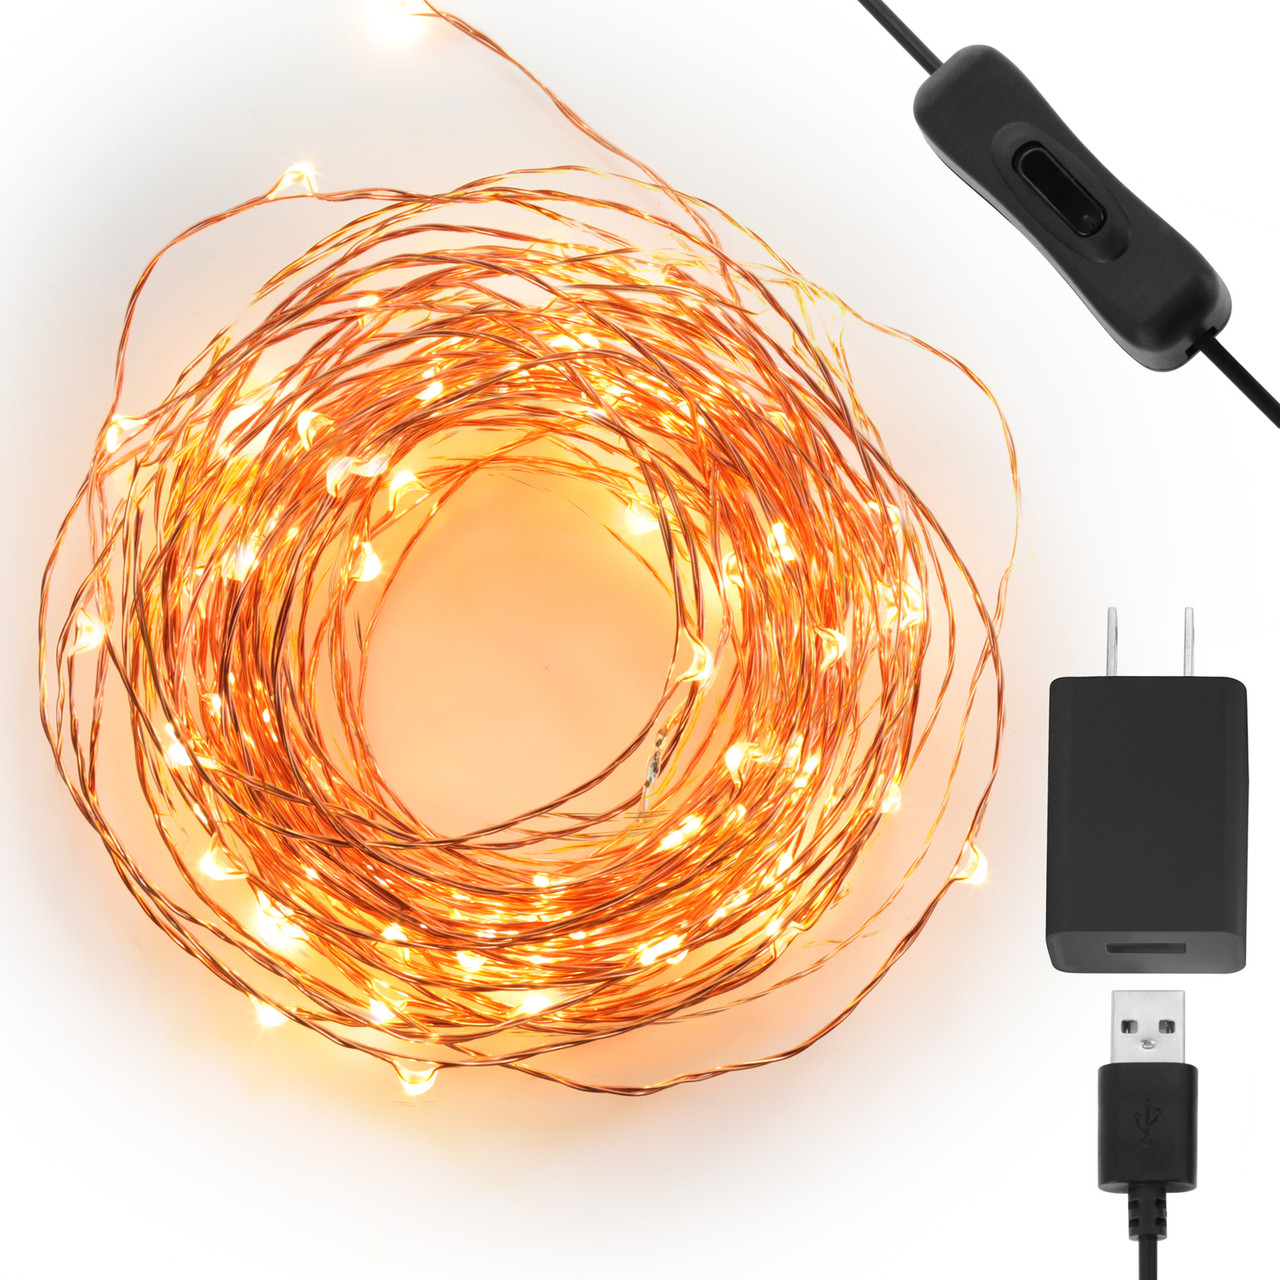 USB powered LED String Lights